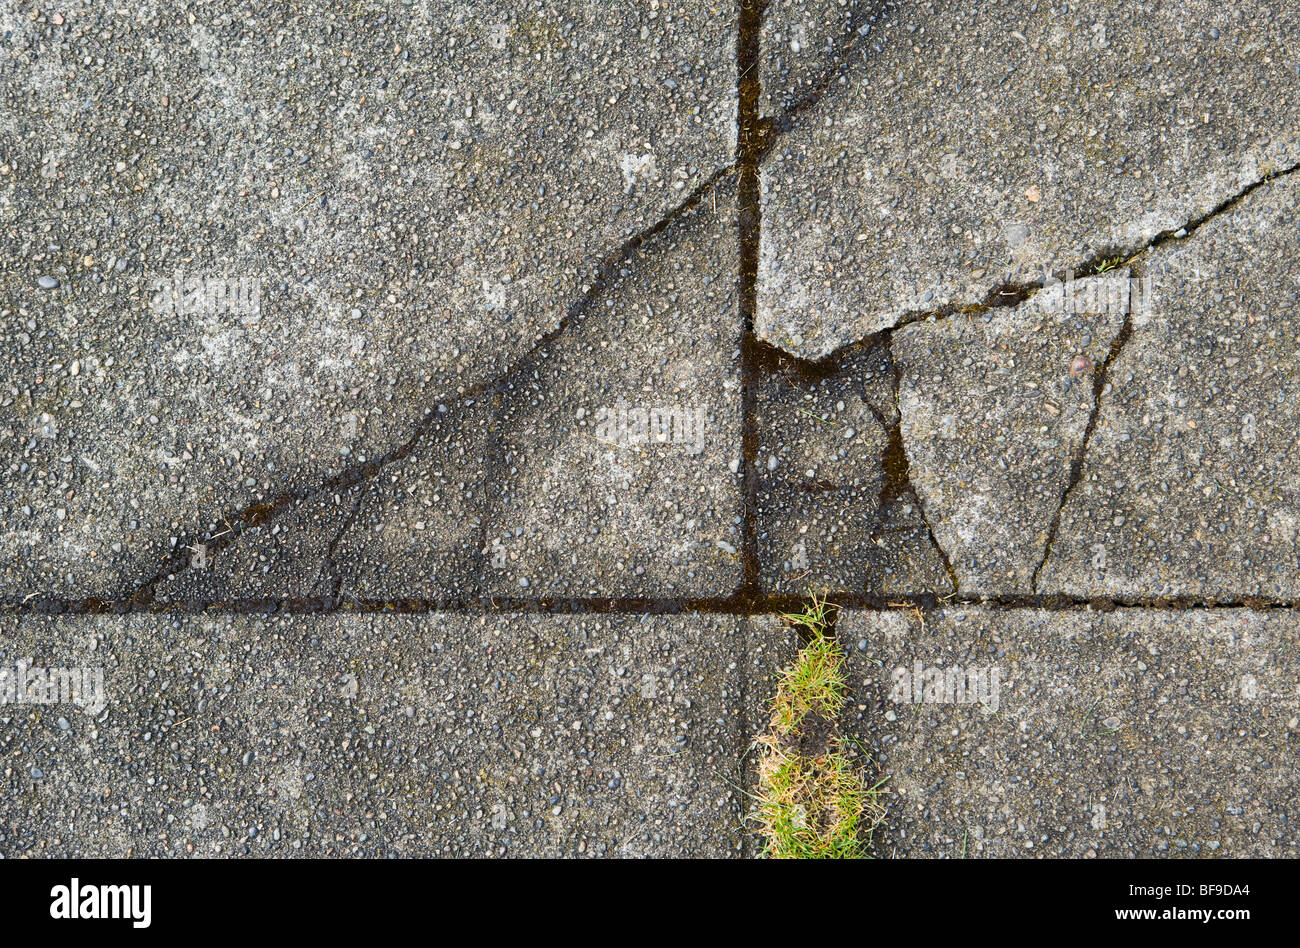 Cracks in the surface of a concrete street. - Stock Image